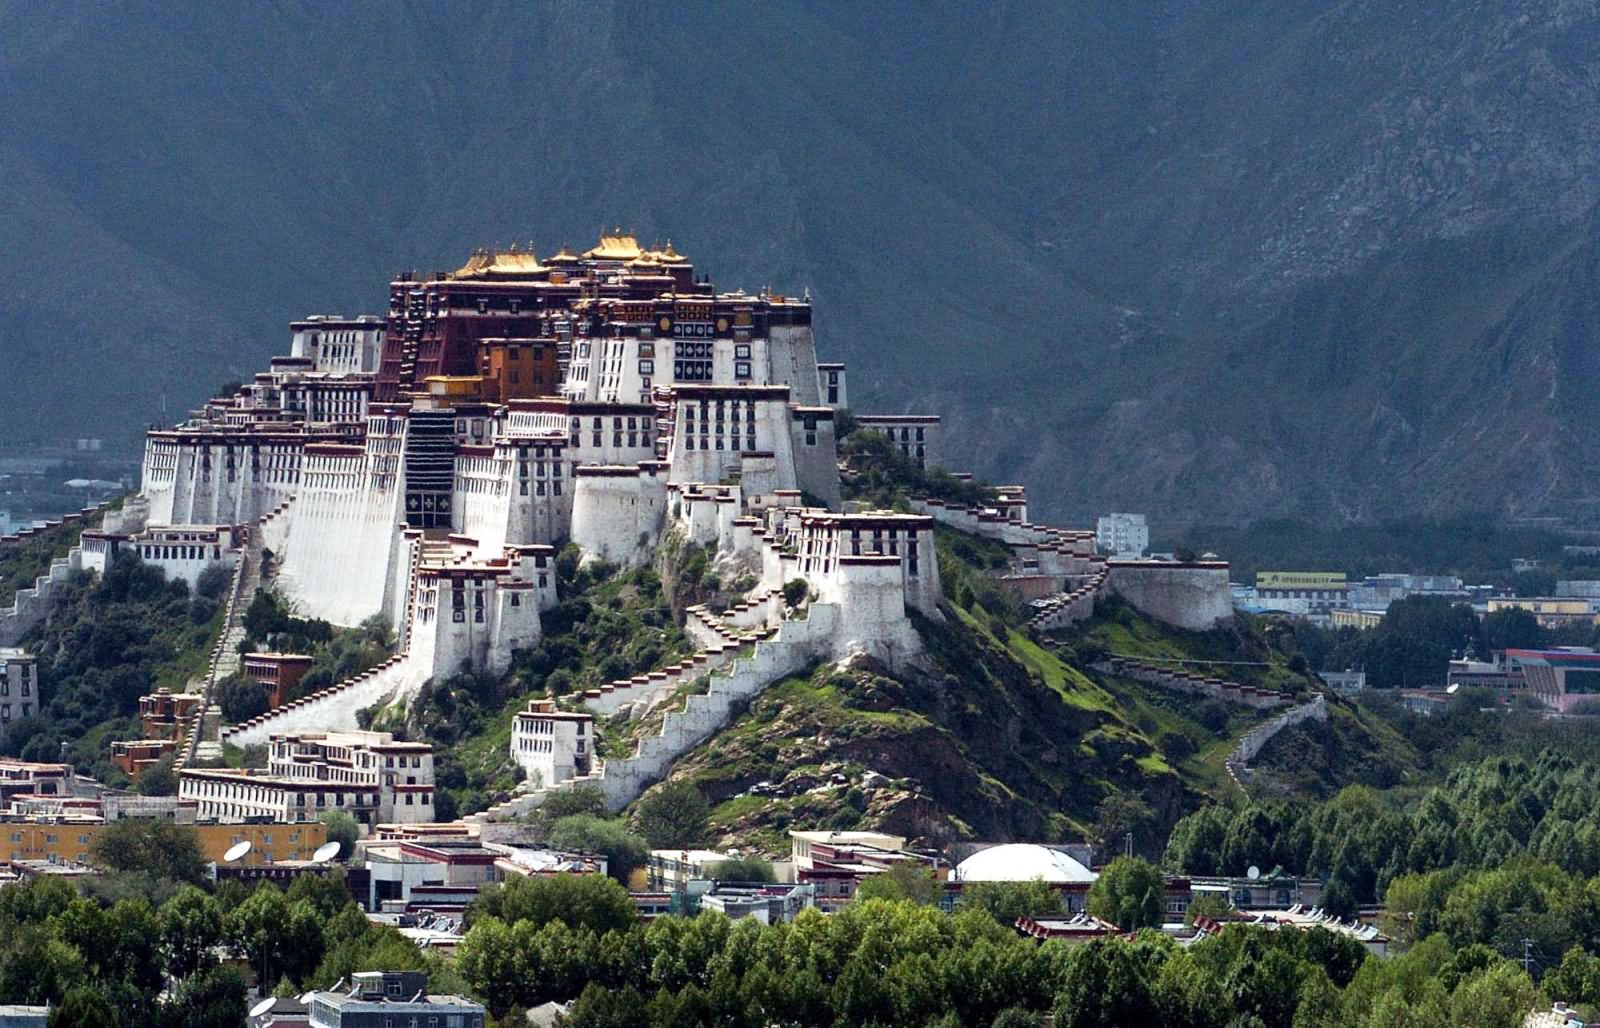 40 Most Adorable Pictures And Photos Of Potala Palace In Tibet  China